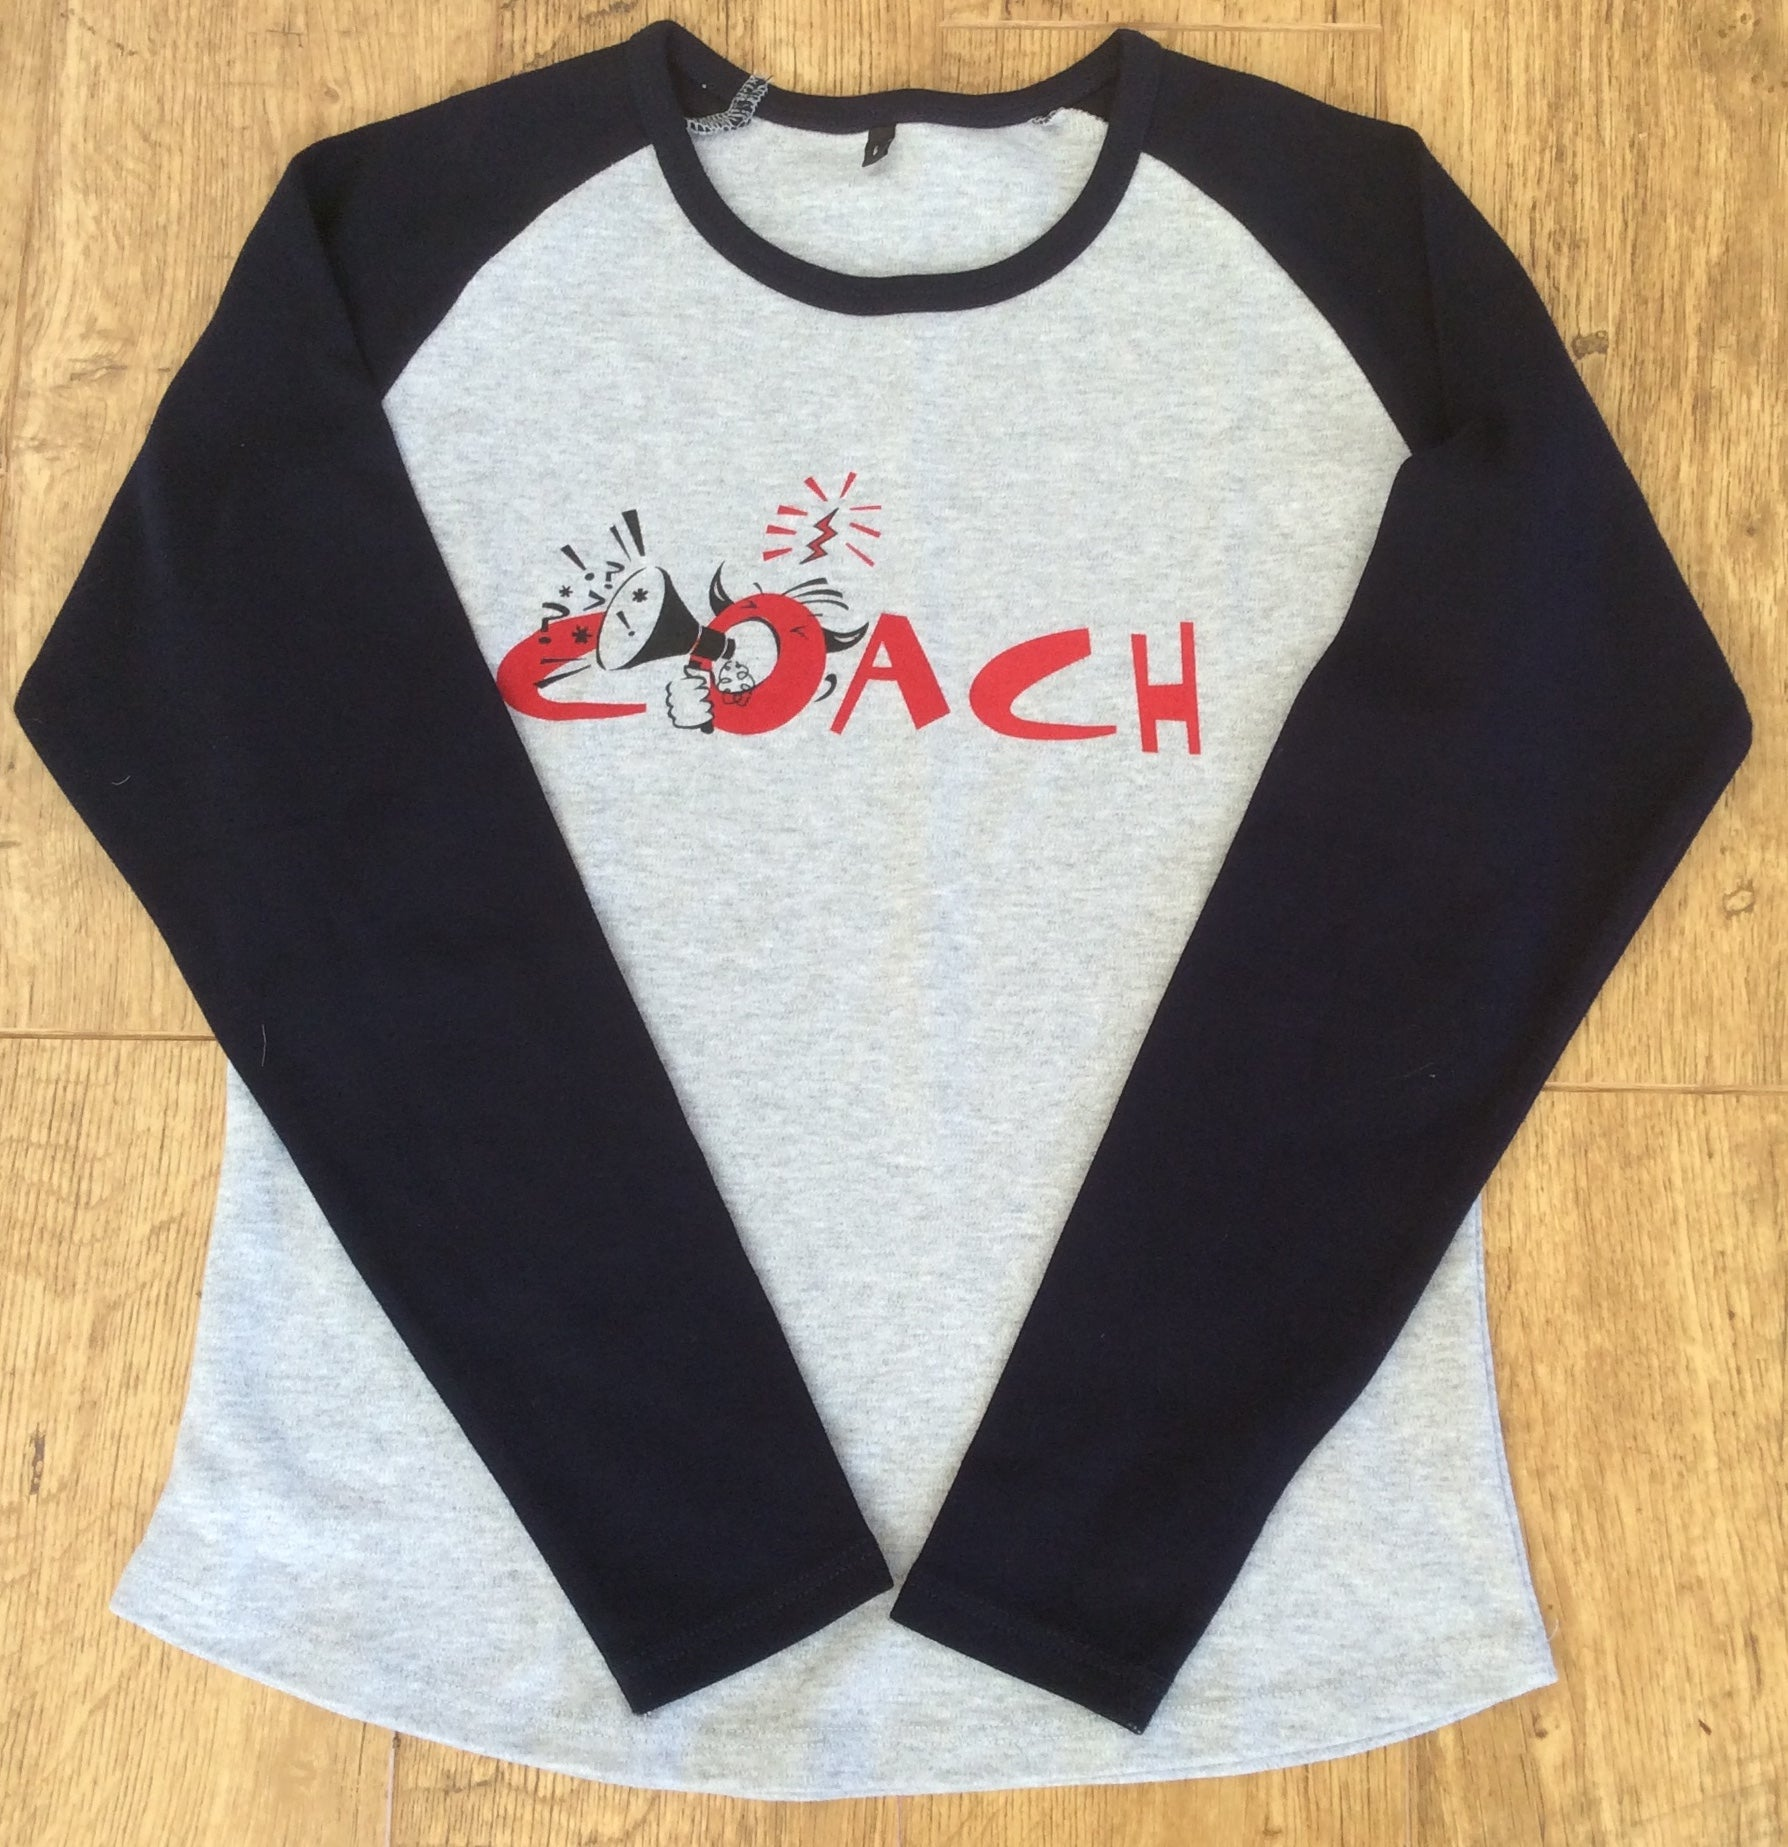 Coach Tee - Women's Fit